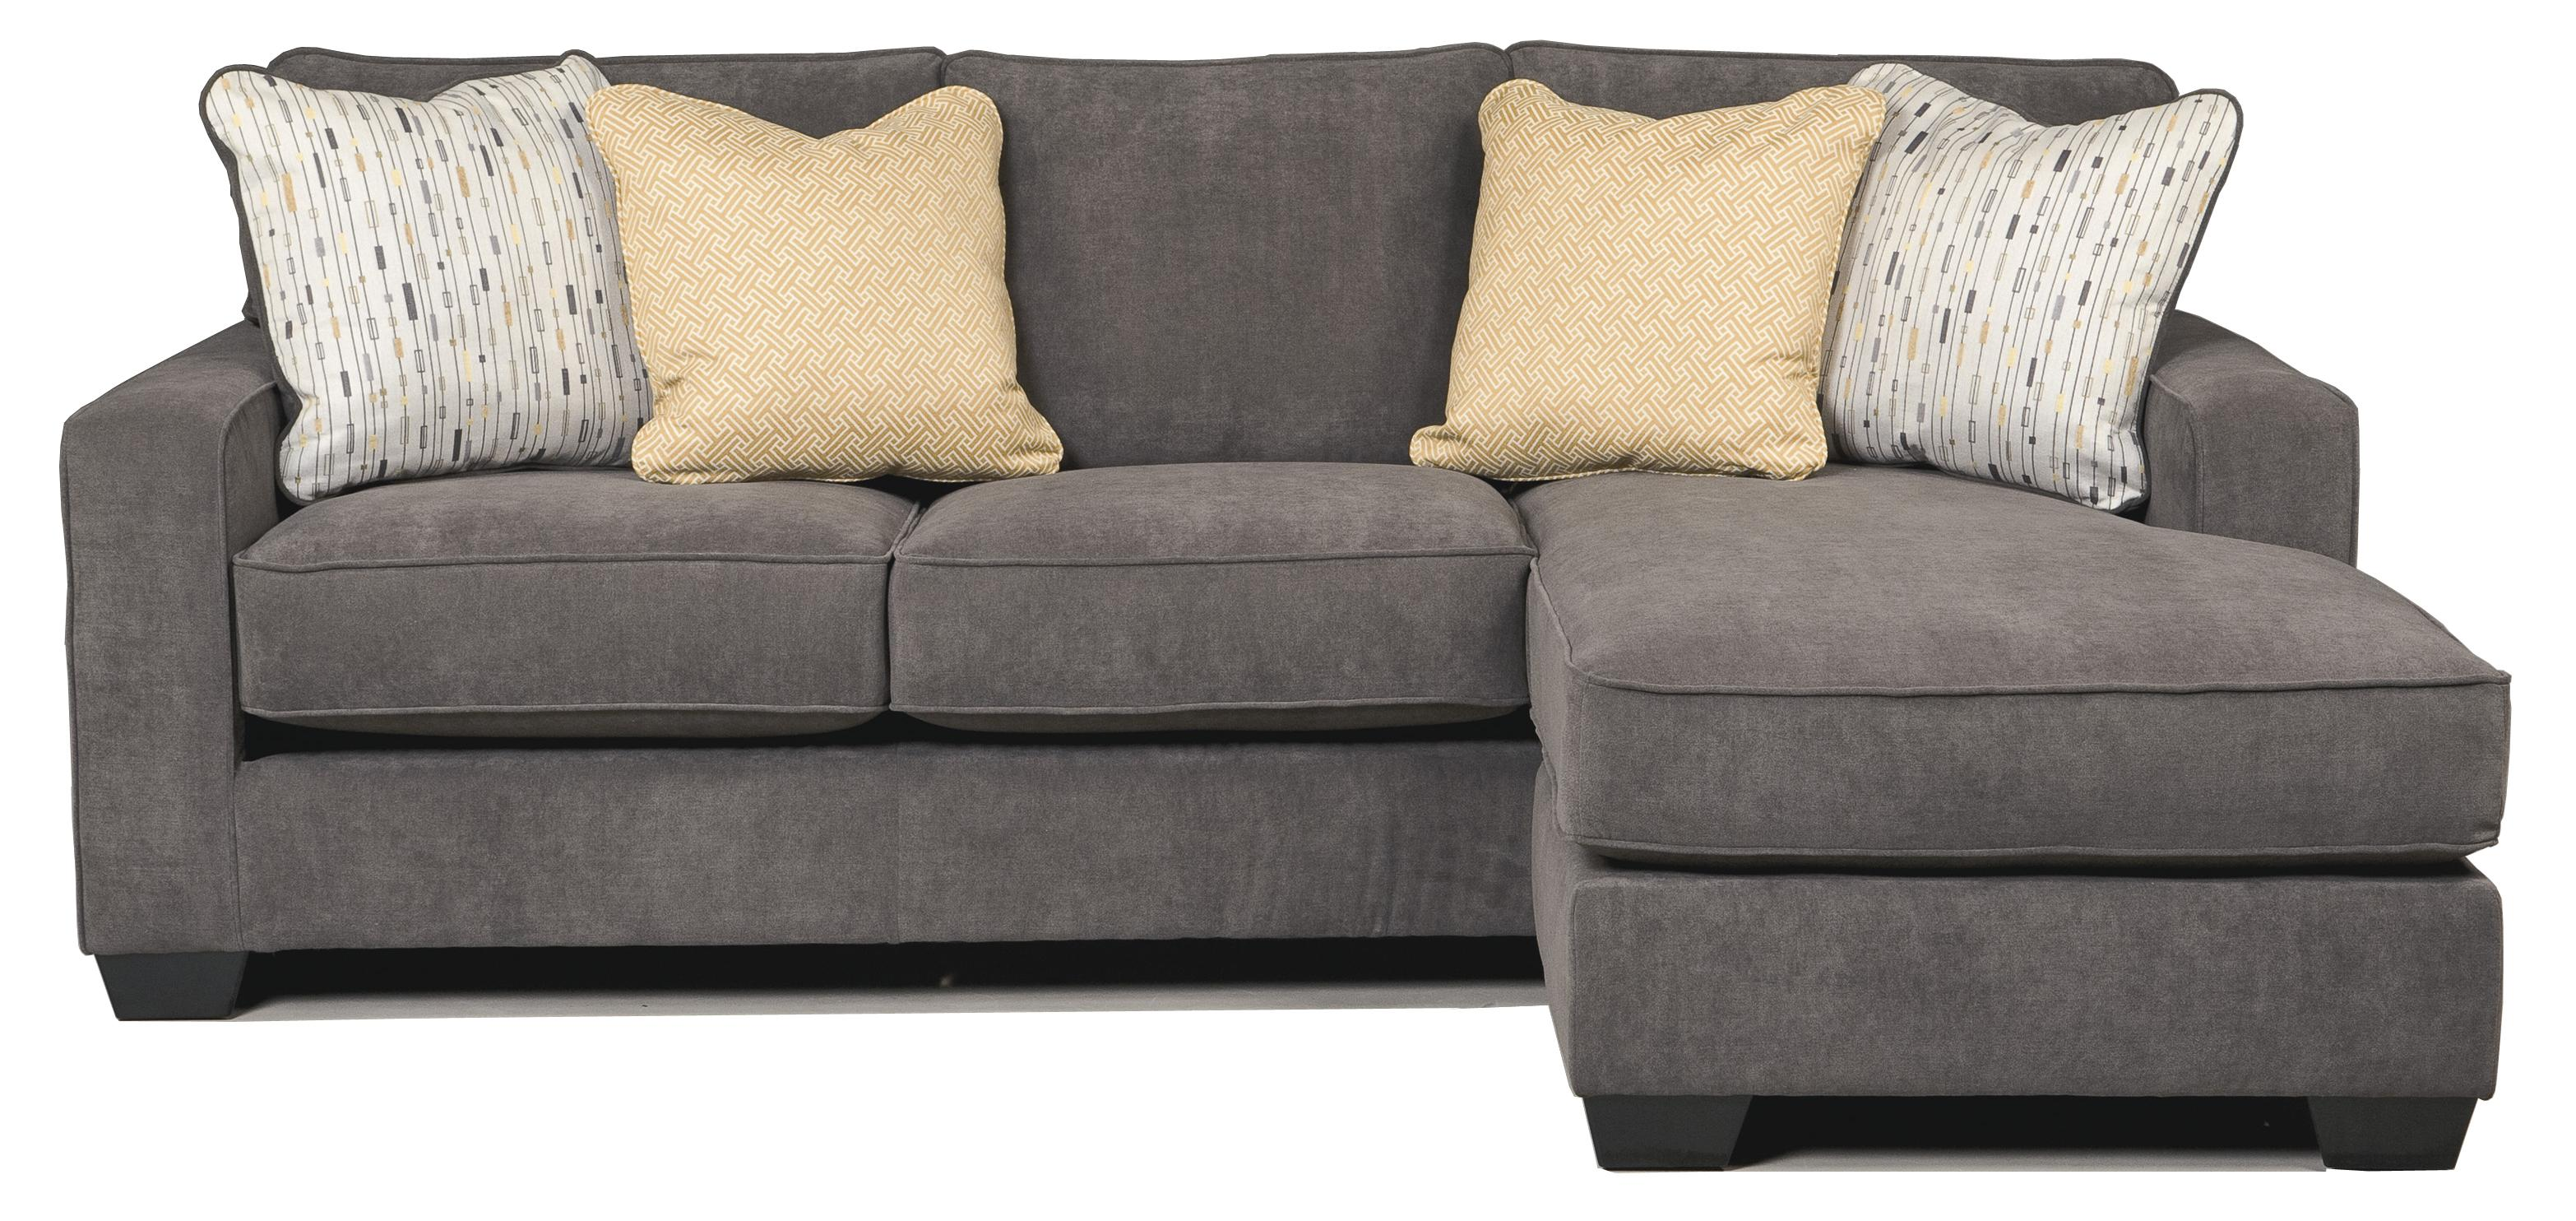 Harper Contemporary Sofa Chaise with Track Arms & Left or Right  Configurable Chaise by Trendz at Ruby Gordon Home